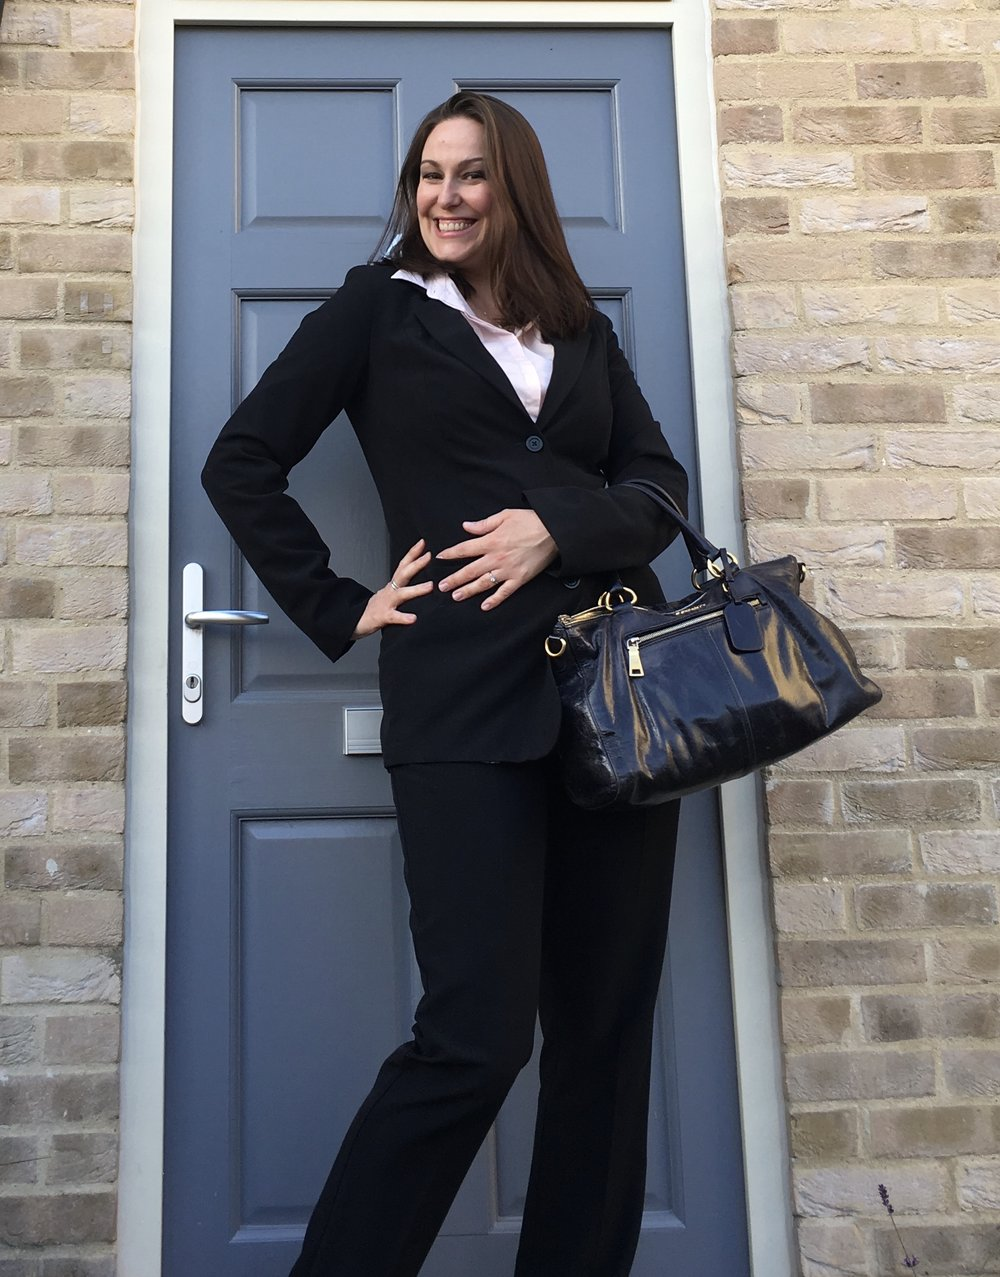 Here's me on my first day as a Partner.